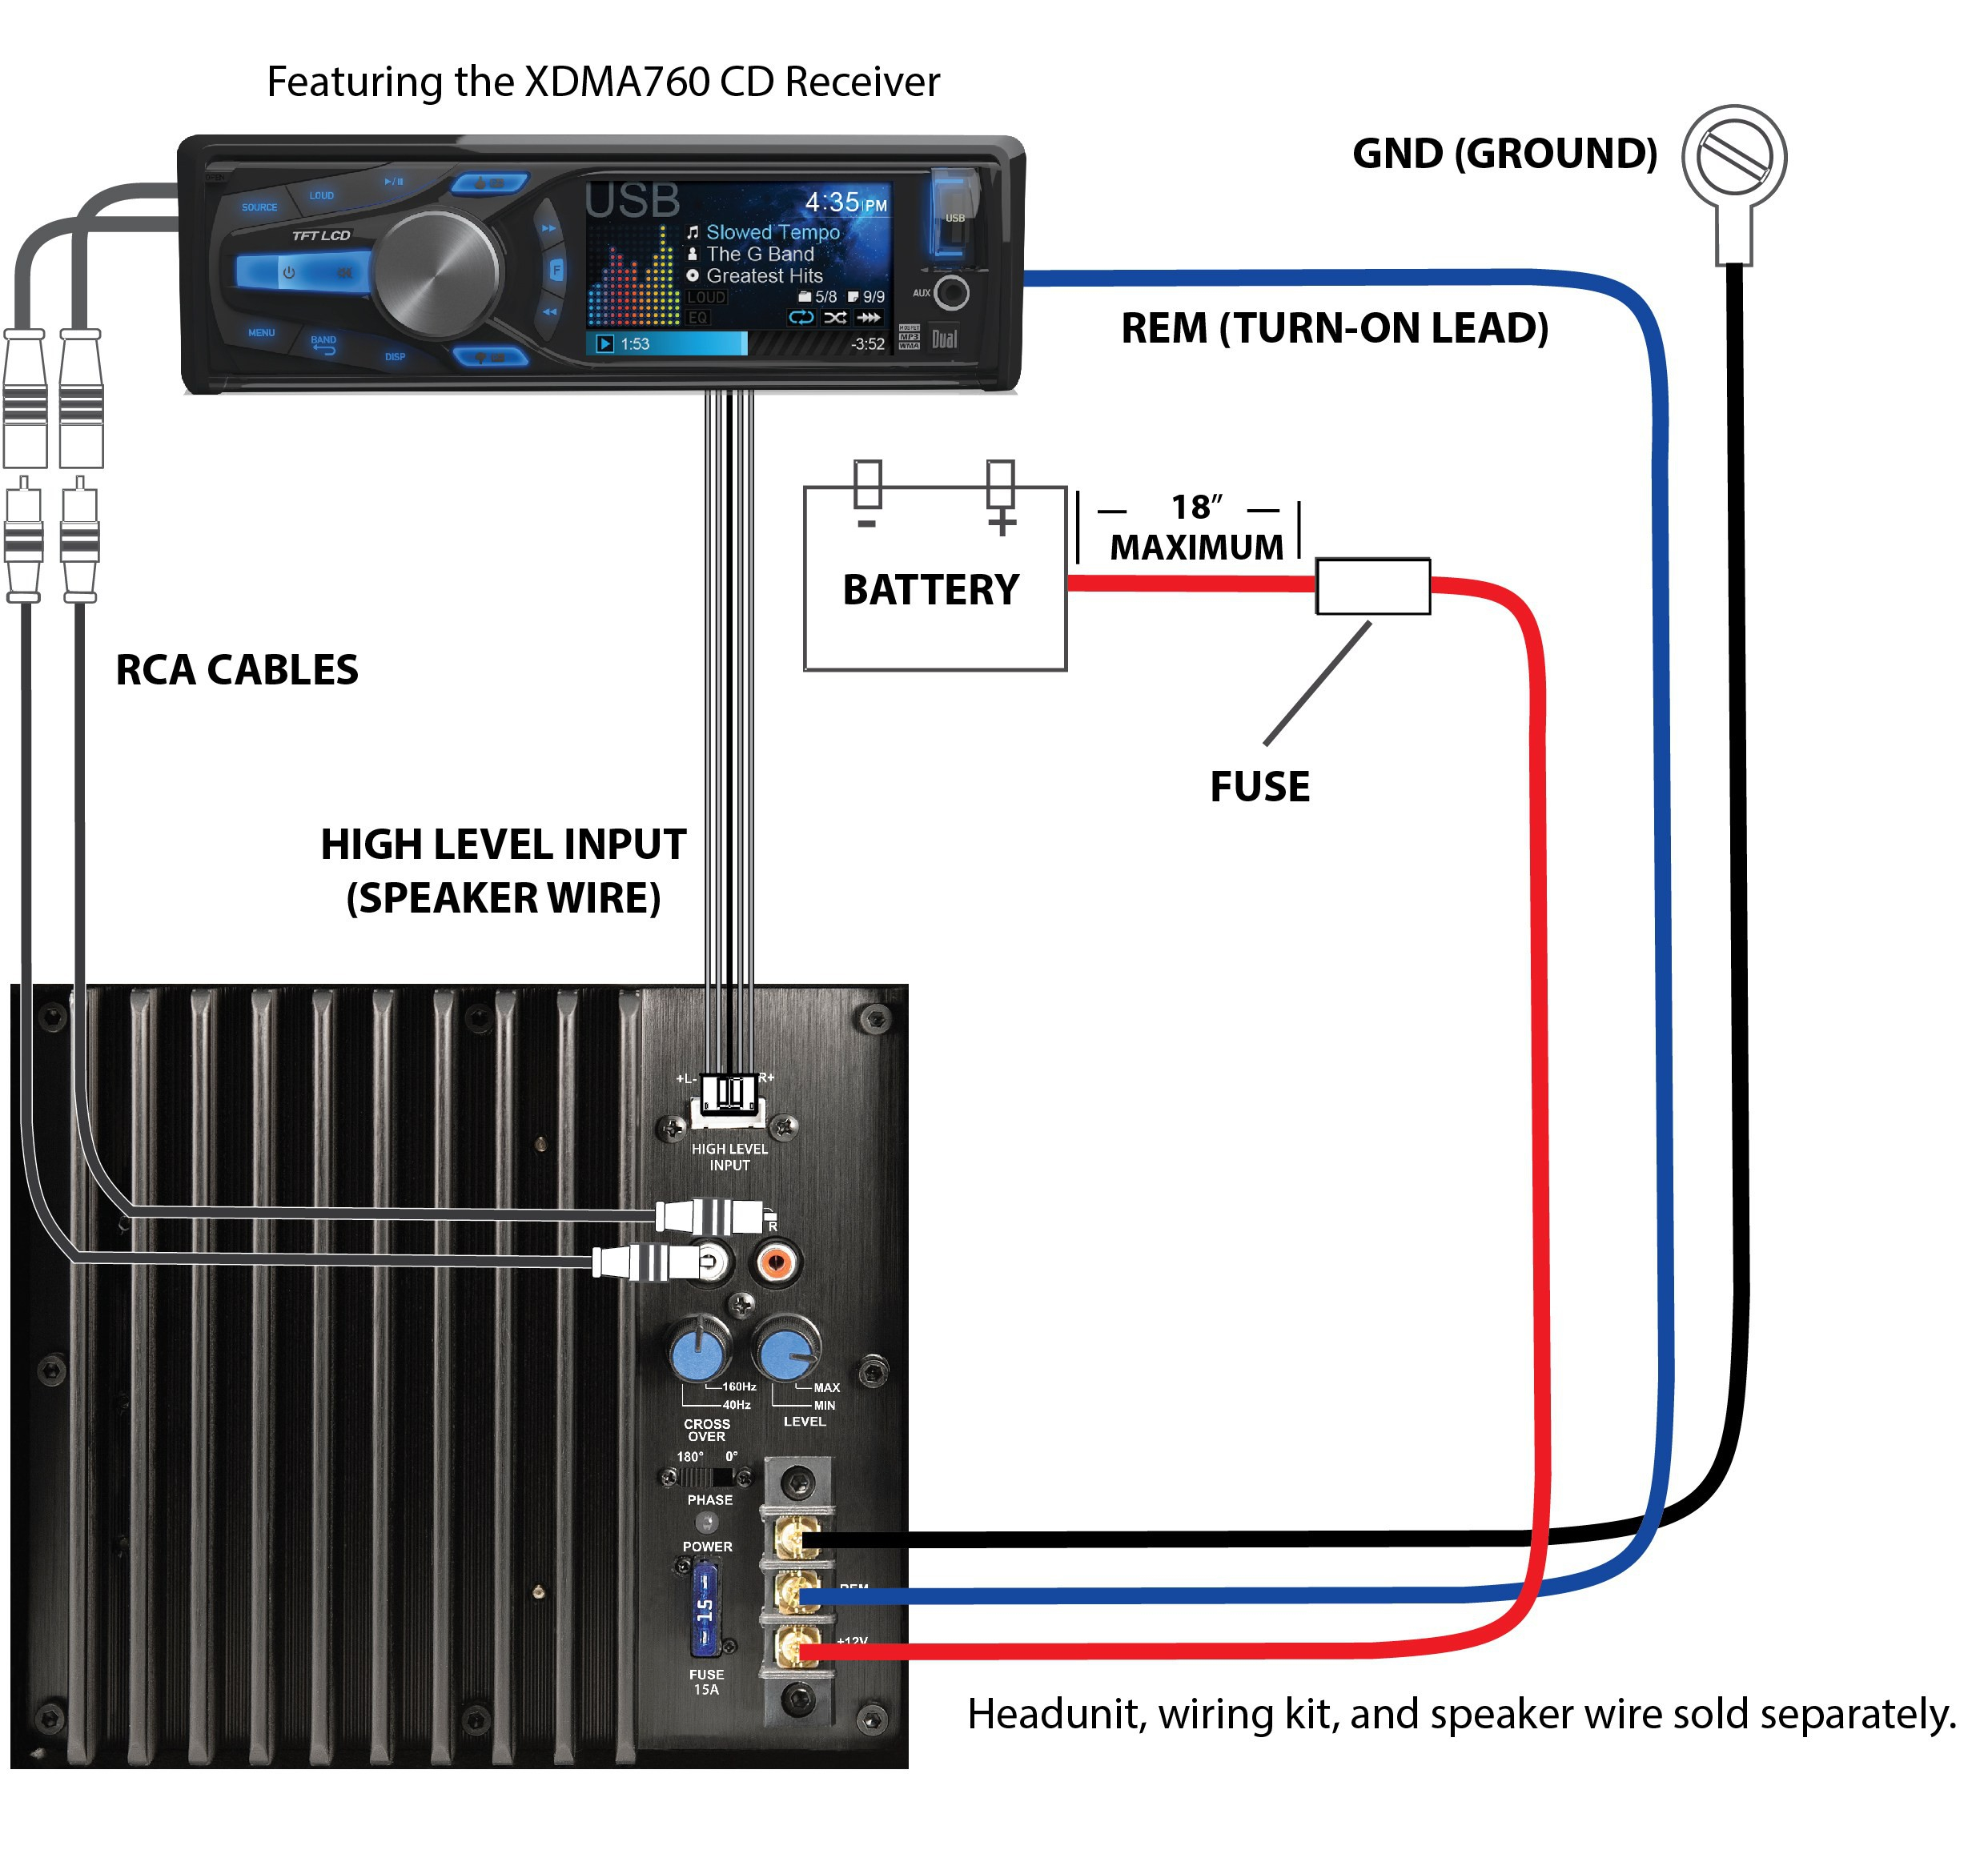 Subwoofer Wiring Diagram from wholefoodsonabudget.com